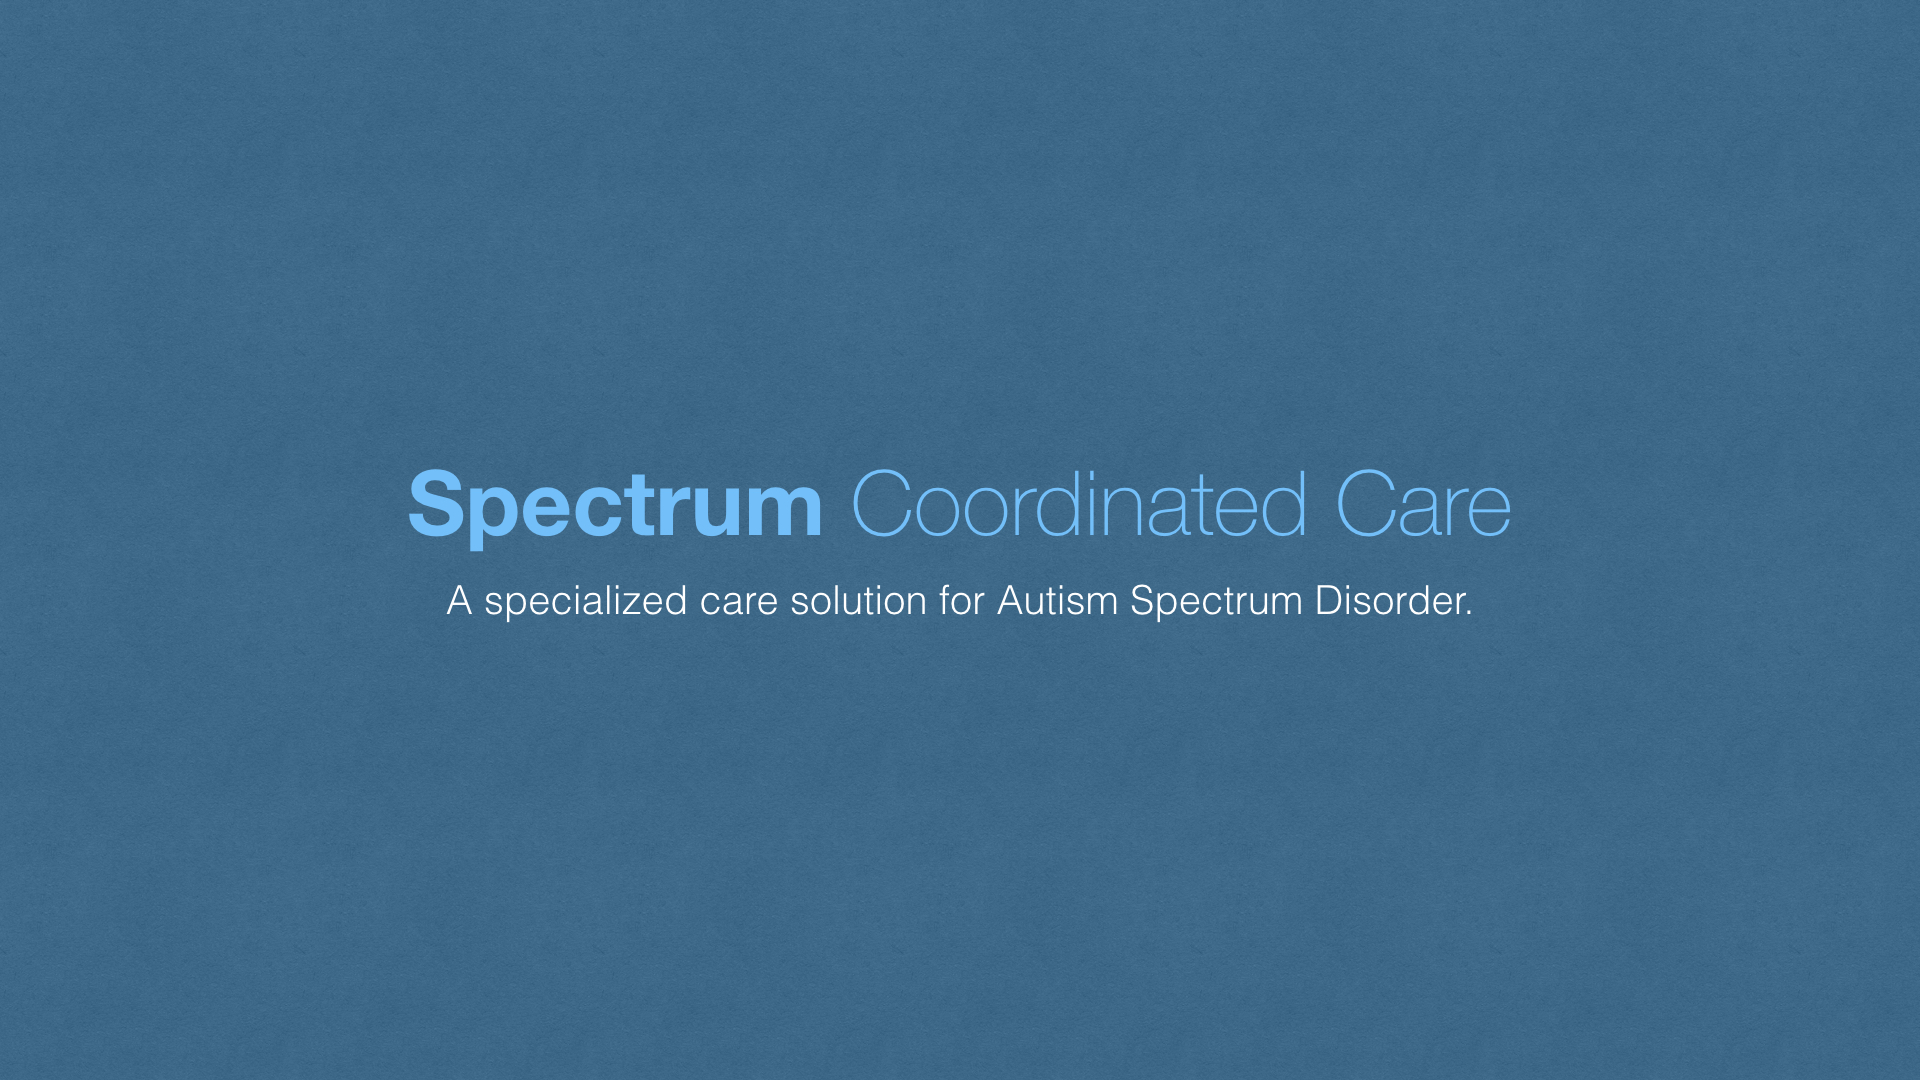 Spectrum_Coordinated_Care_FINAL.023.jpeg